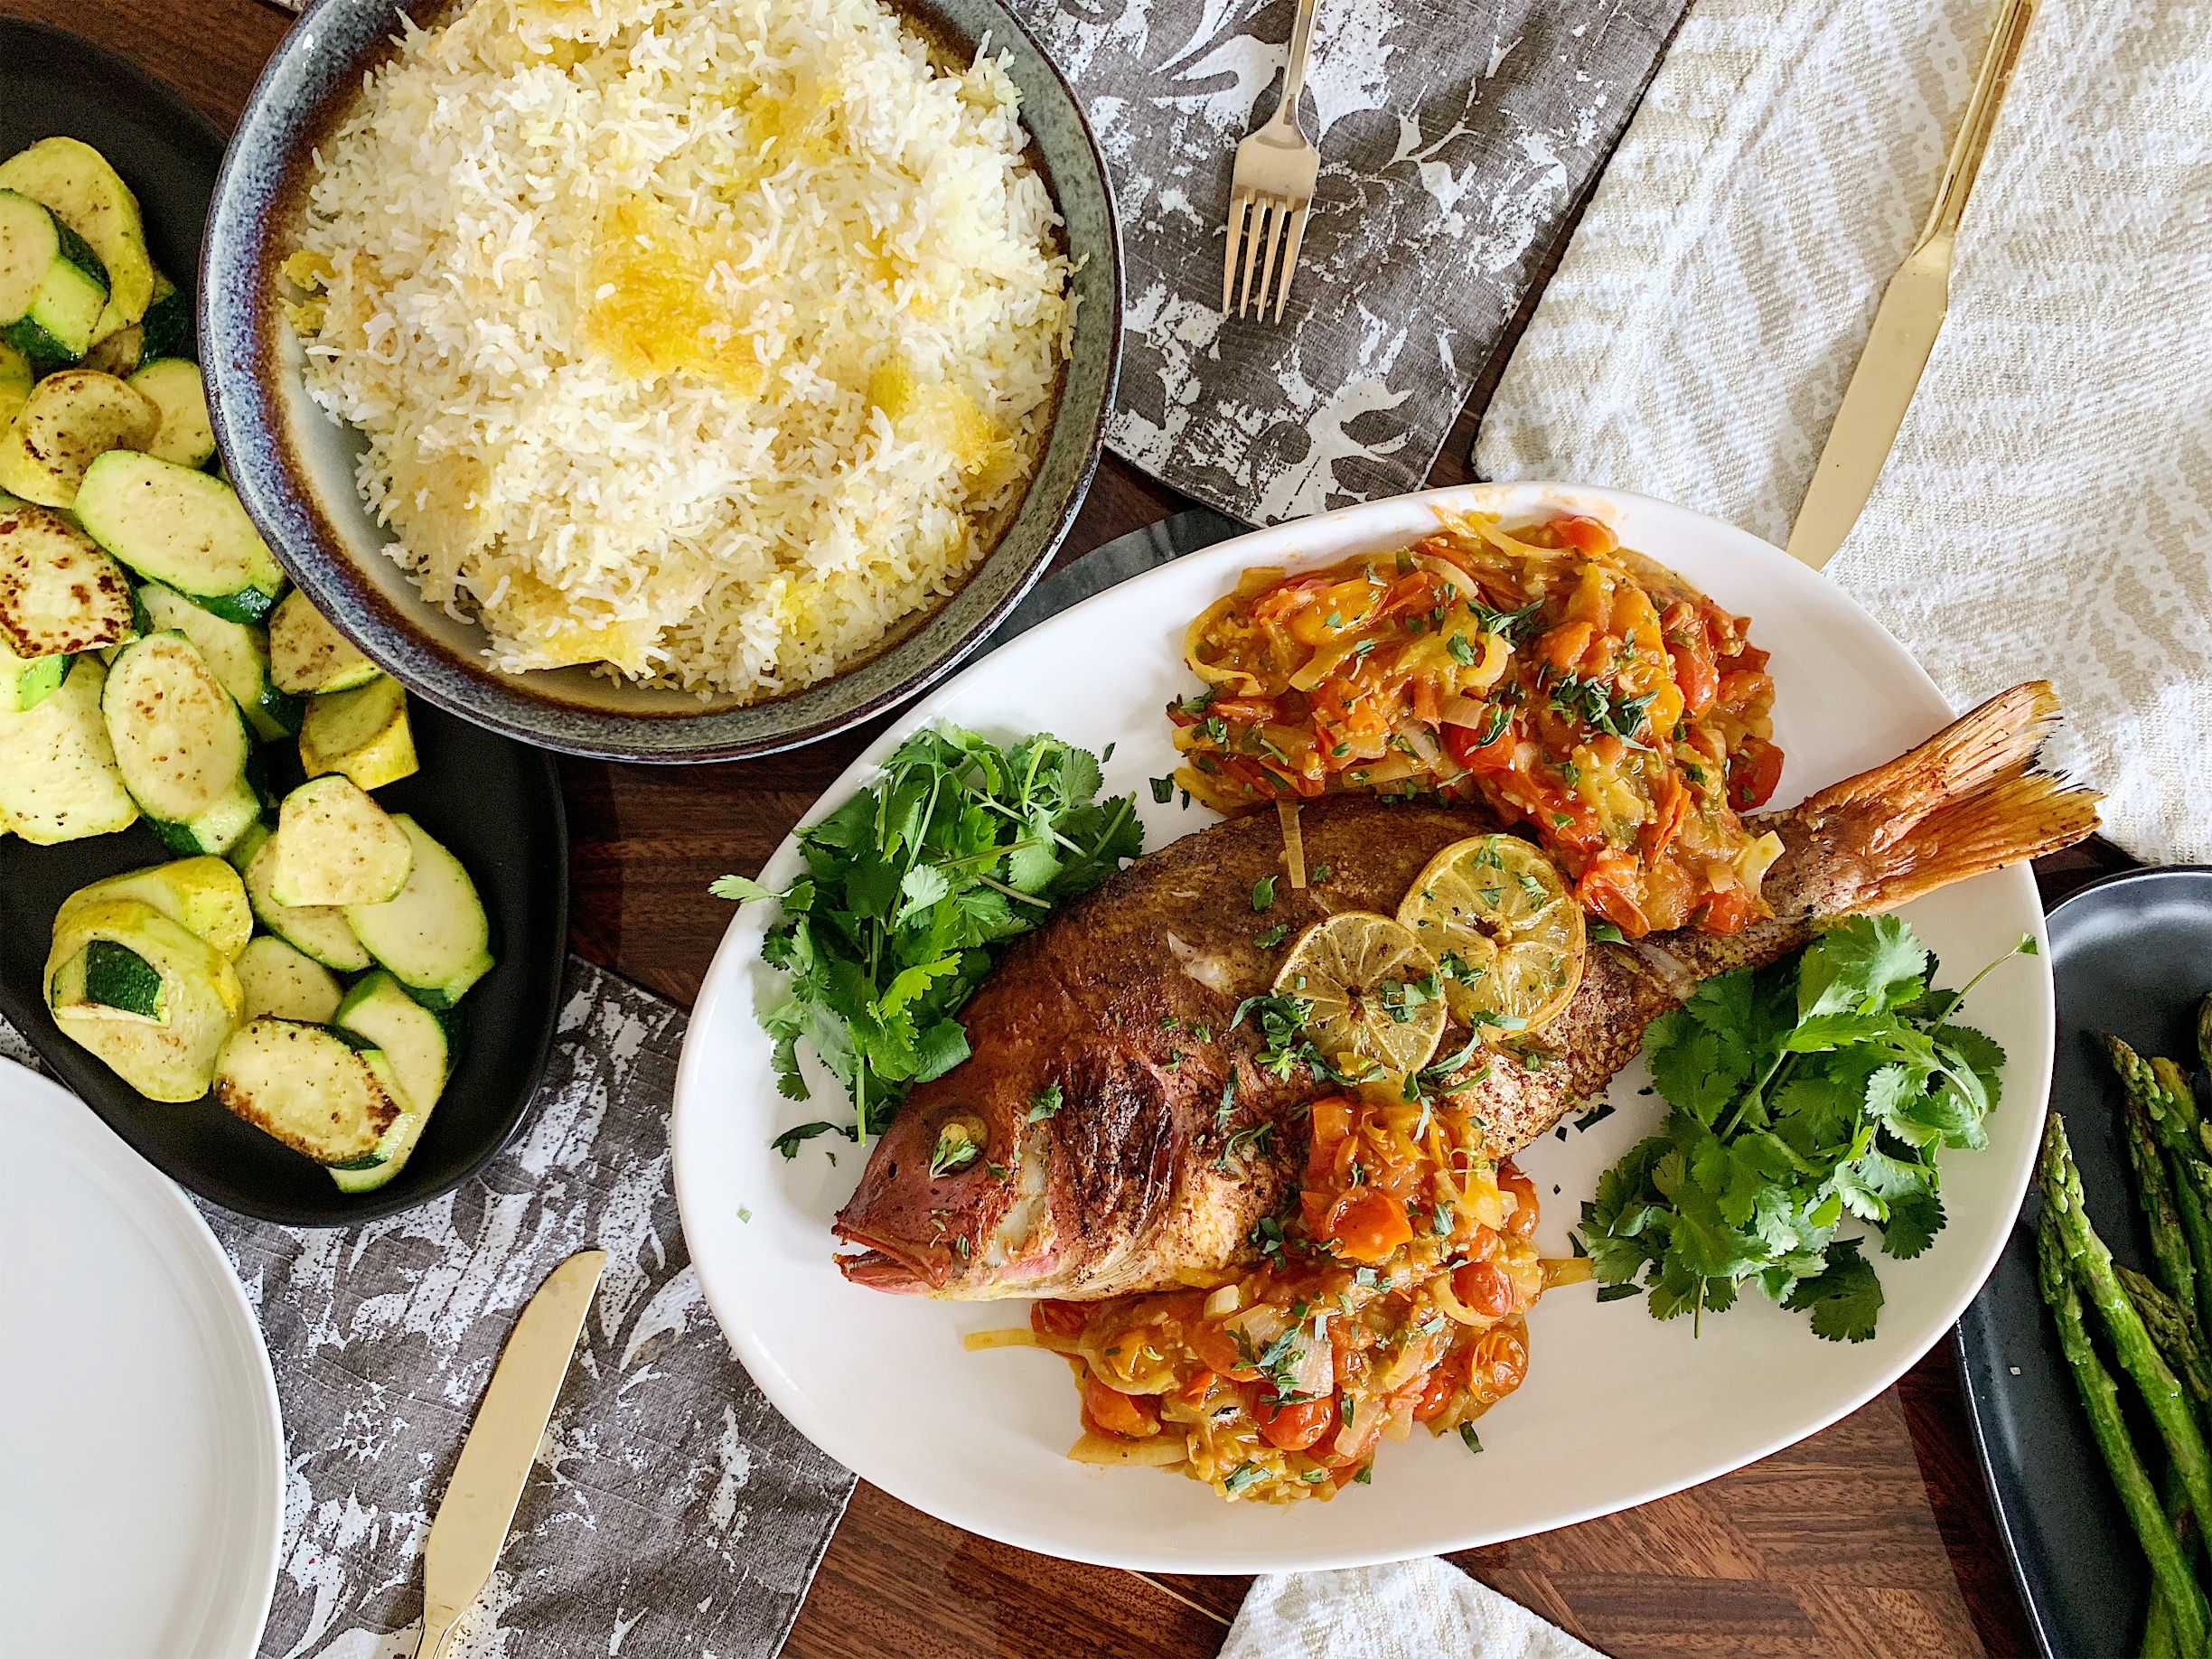 This recipe is great with saffron rice and grilled zucchini